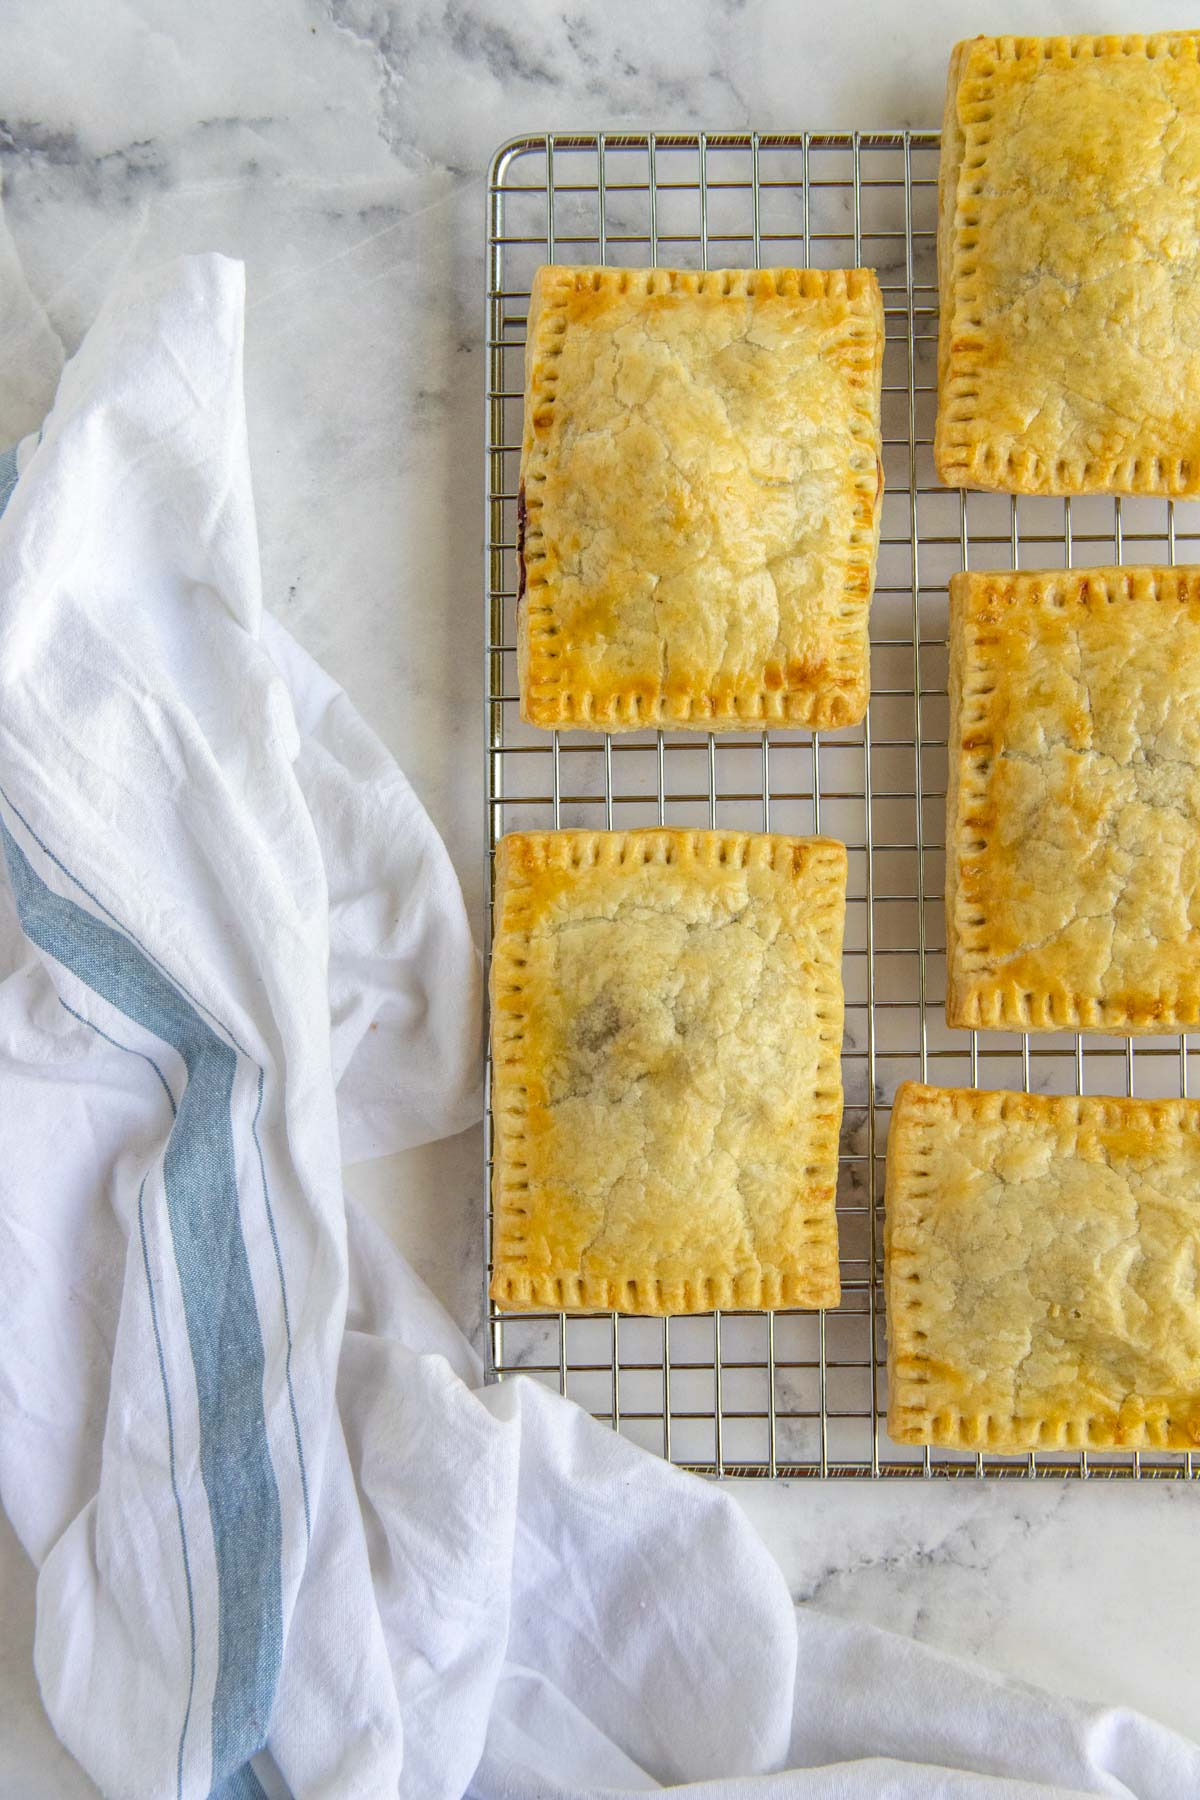 Baked blackberry hand pies on a cooling rack without the glaze